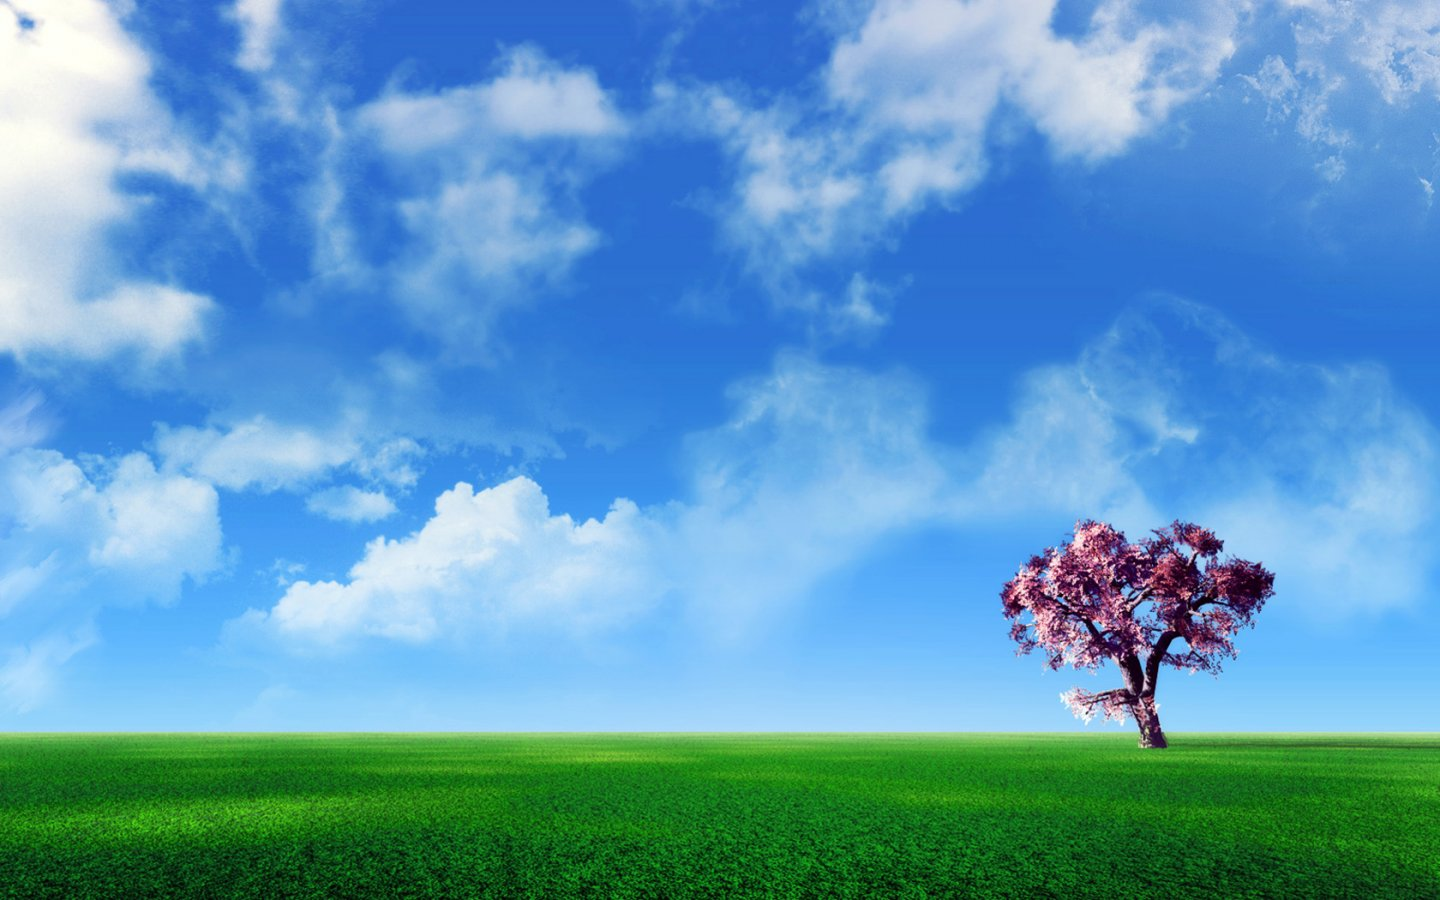 http://4.bp.blogspot.com/-W3XnfWQDkOc/TwPY2ZtMjHI/AAAAAAAAEtE/6-eFubJ3FBk/s1600/Dream-world-2-wallpaper_1440x900.jpg